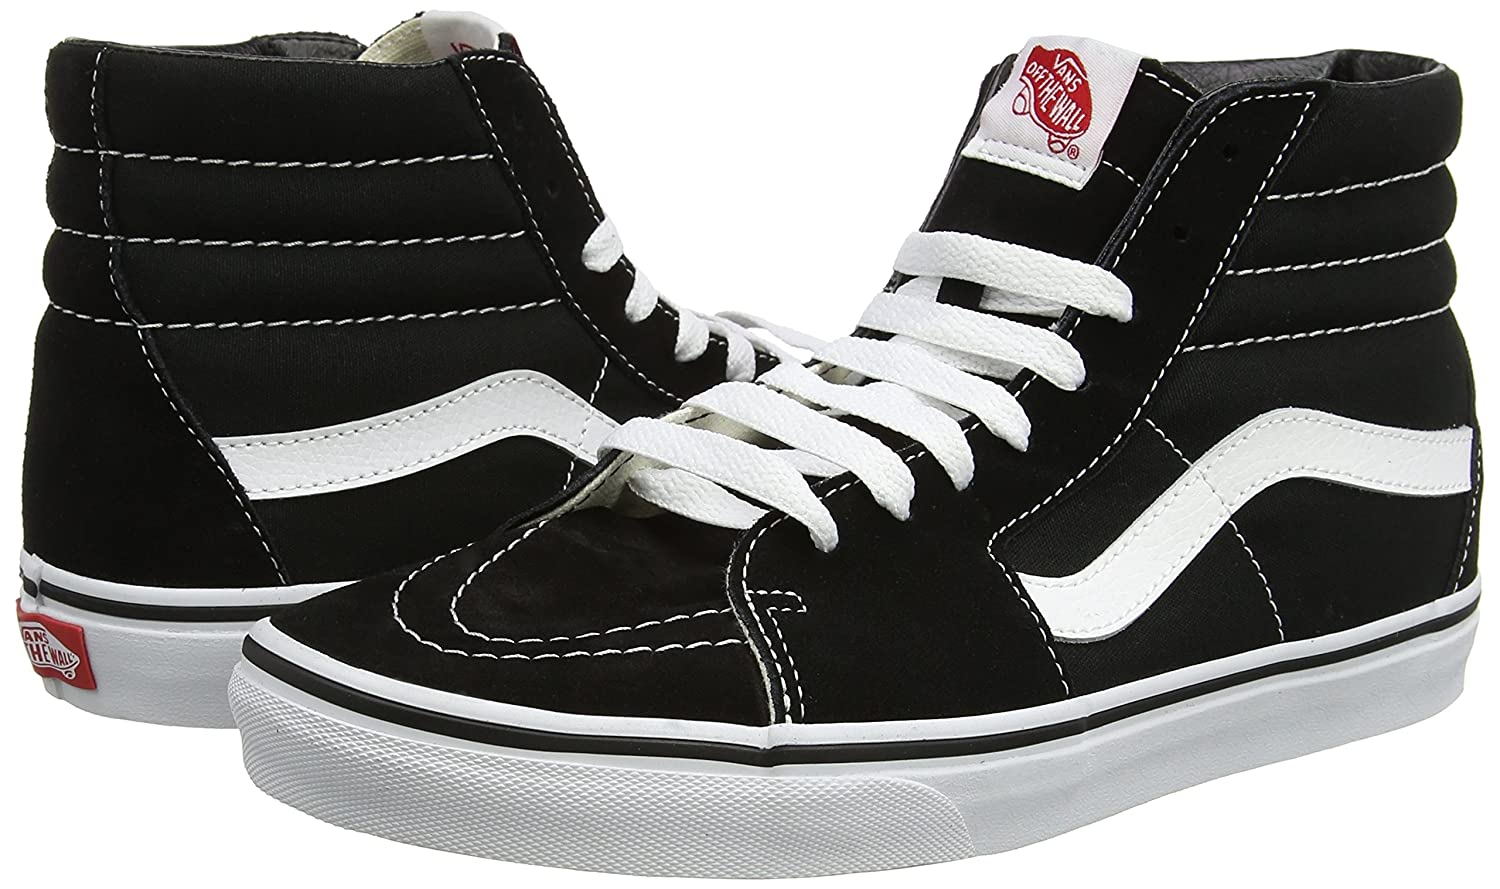 Vans Men's Sk8-Hi(Tm) Core Classics B075W7Q5TY 14.5 B(M) US Women / 13 D(M) US Men|Black/White